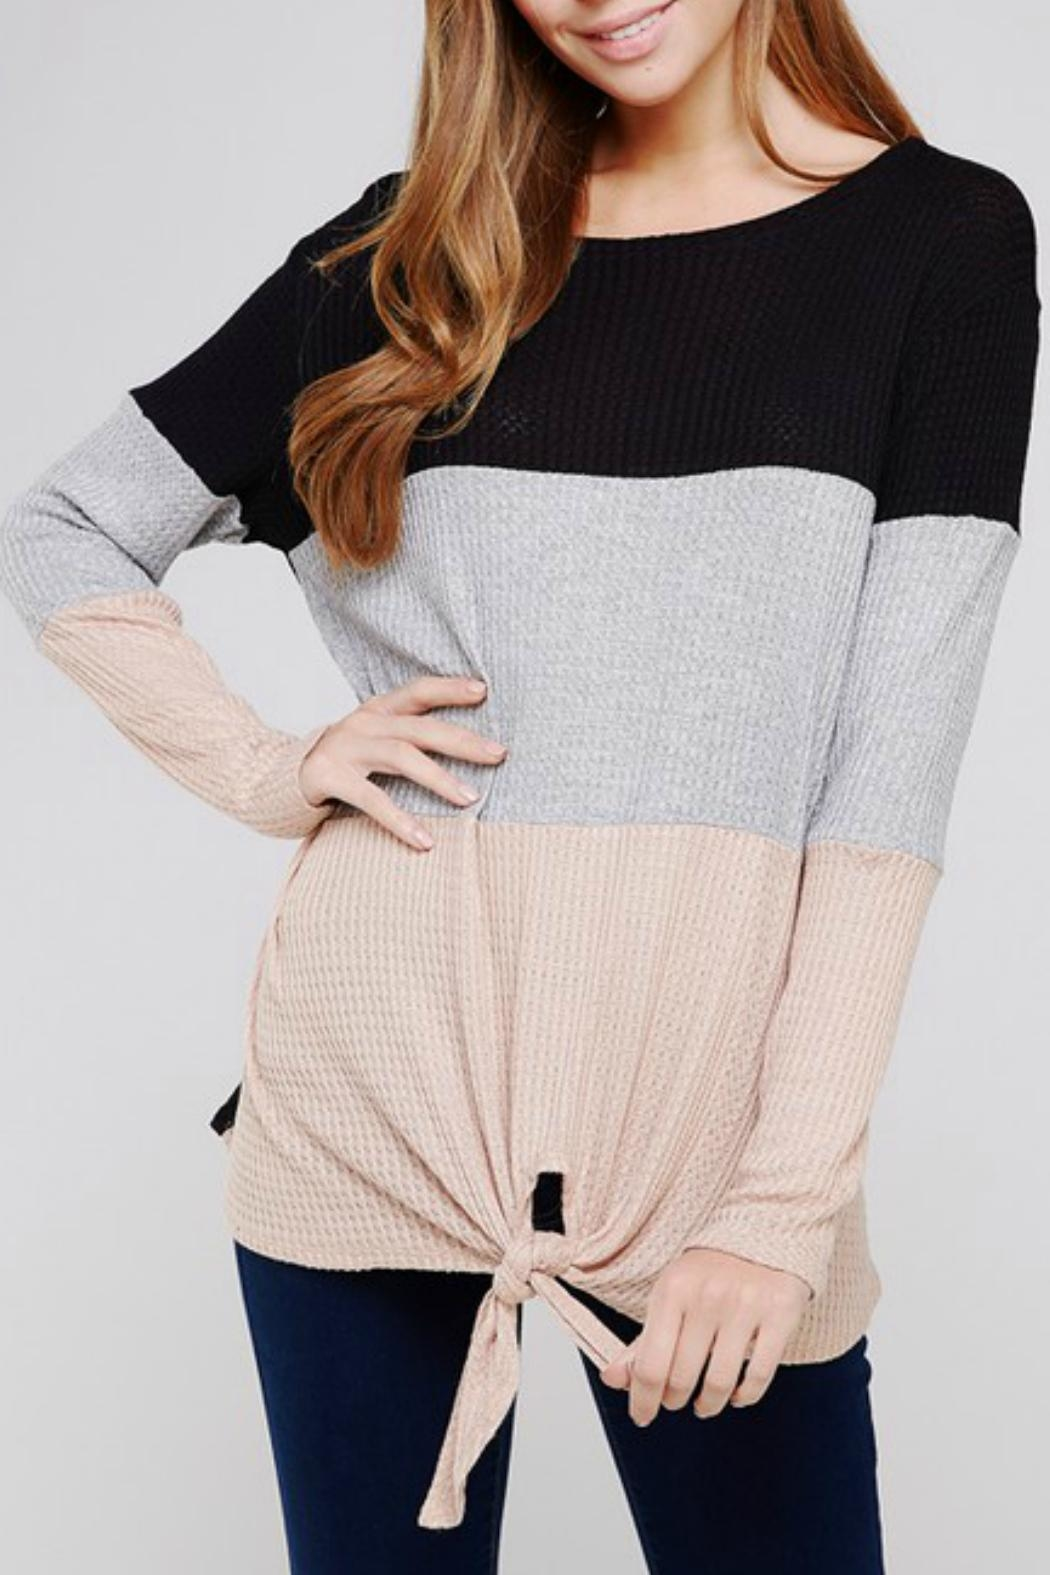 Blooms in The City Waffle-Knit Color-Block Top - Front Cropped Image